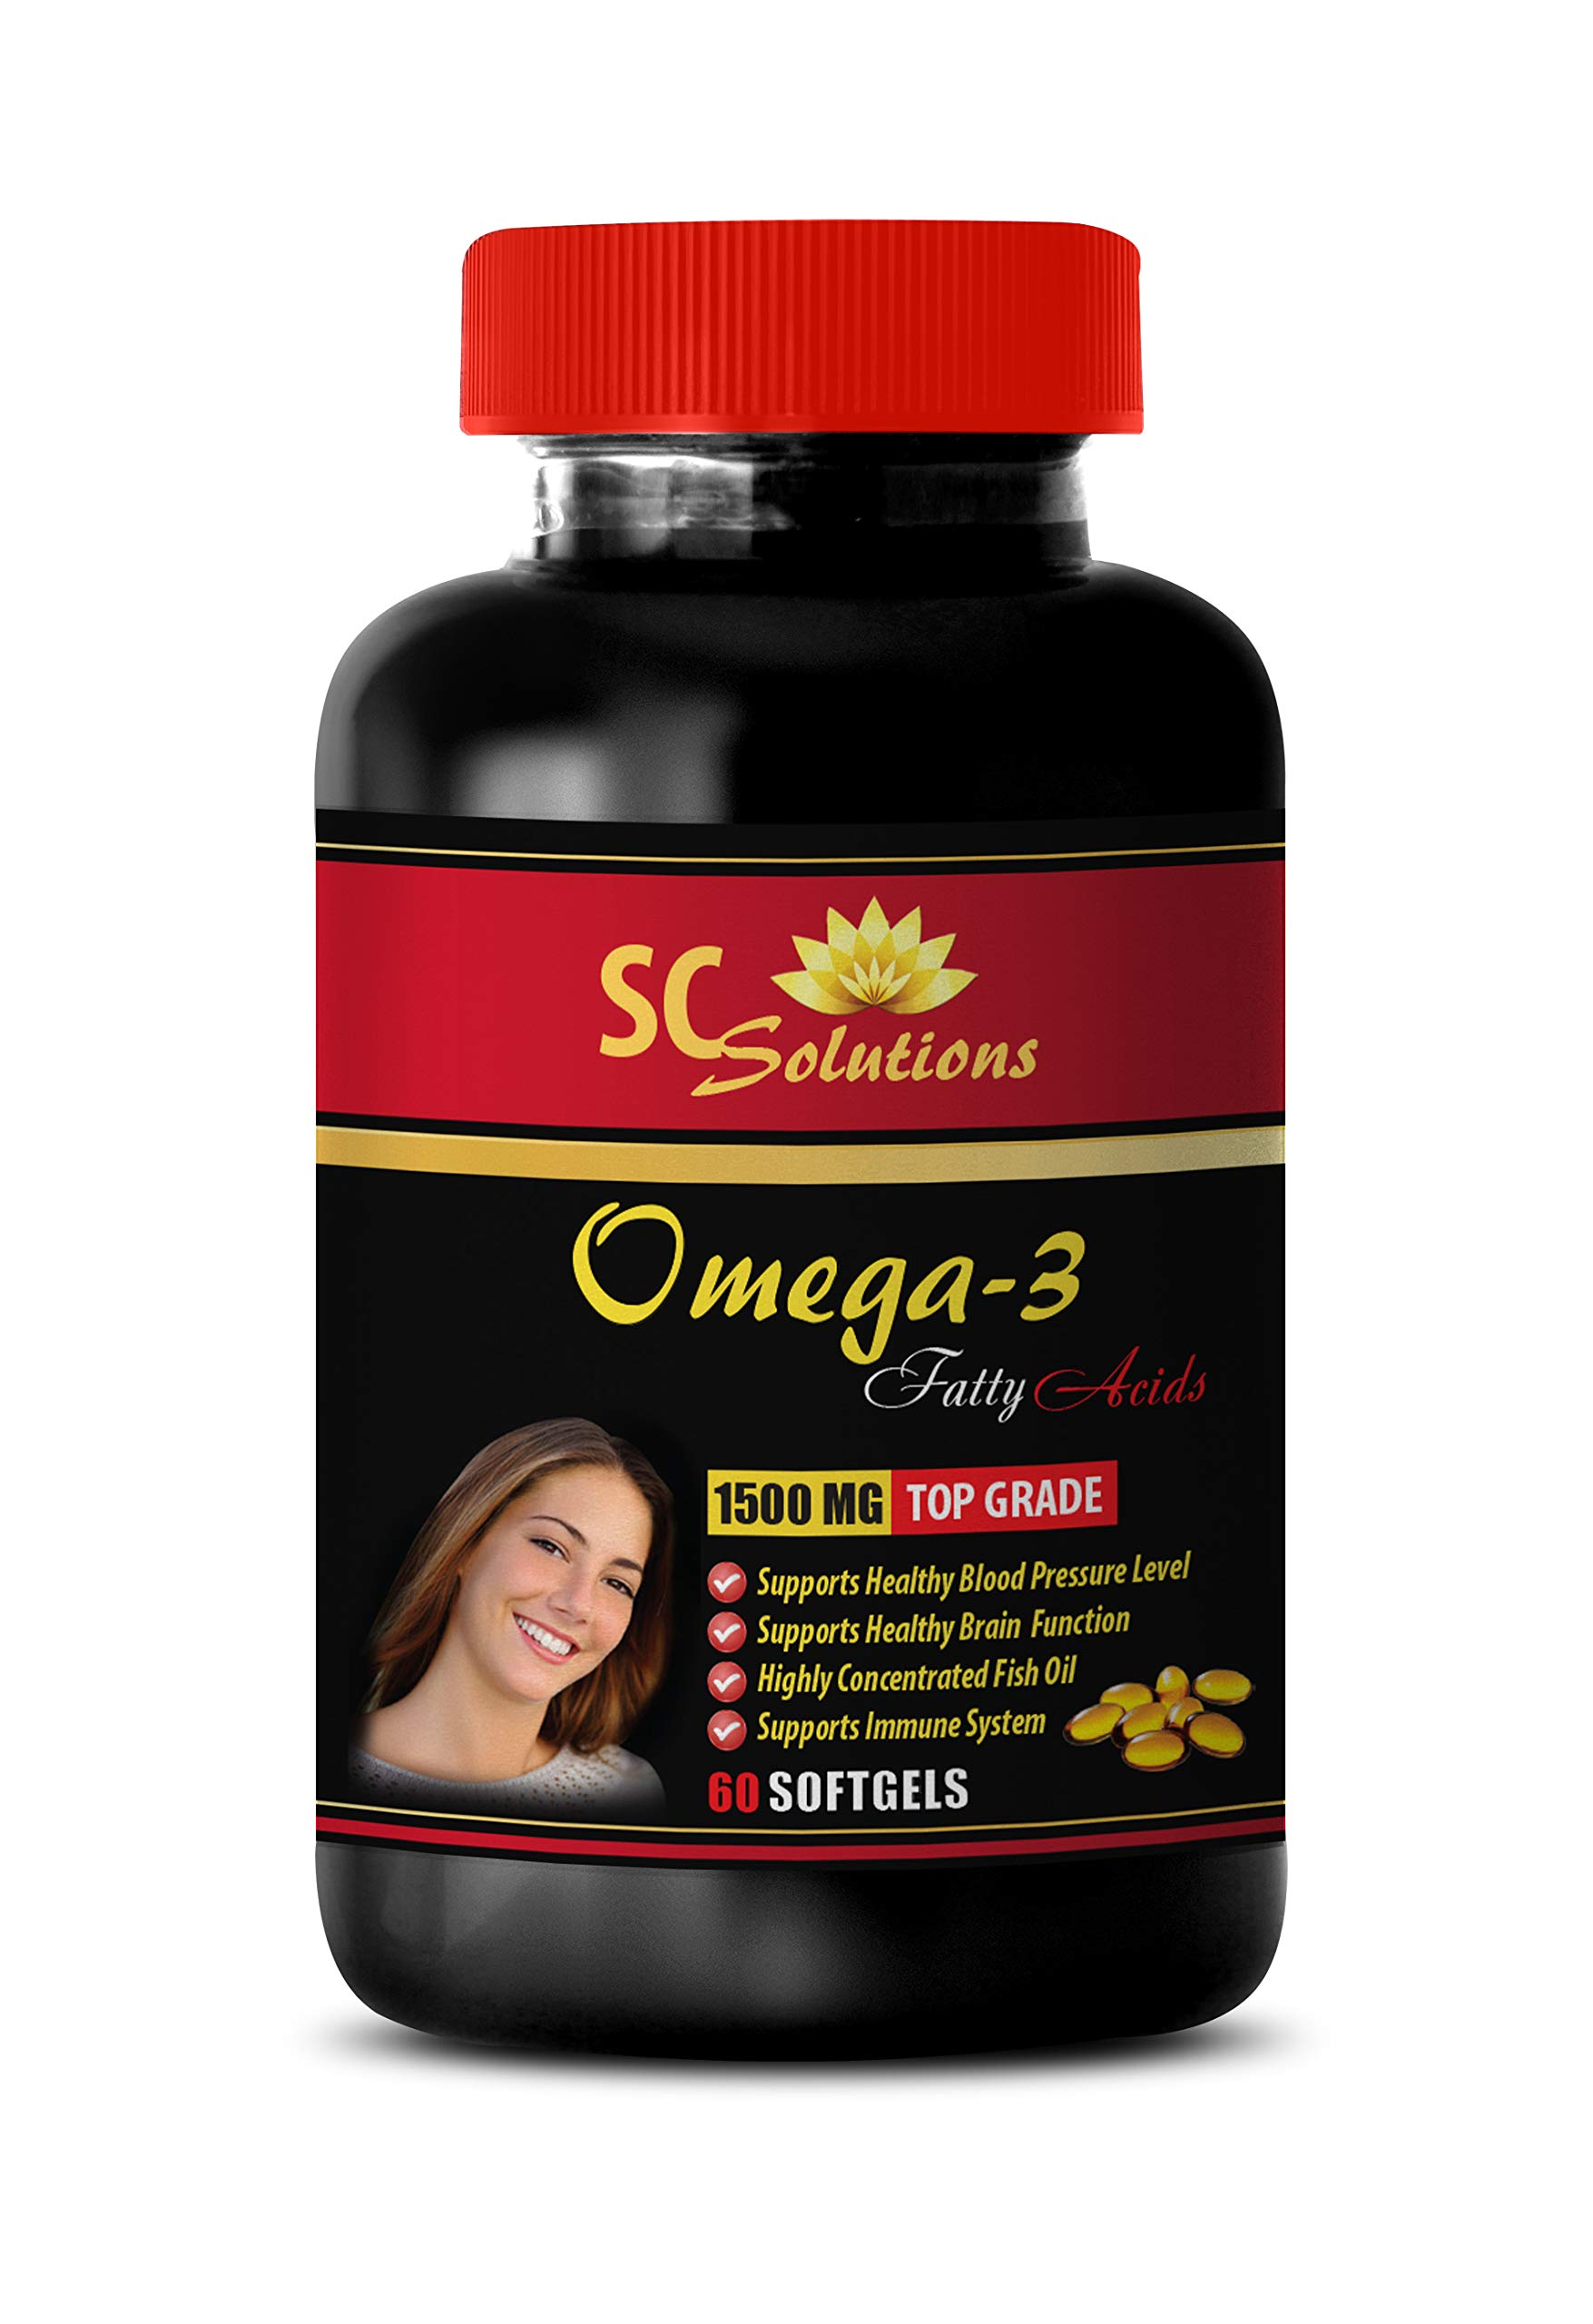 Immune Support Vitamins for Women - Omega 8060 (Fish Oil) - Omega 3 Brain Formula - 1 Bottle 60 Softgels by SKIN CARE SOLUTIONS